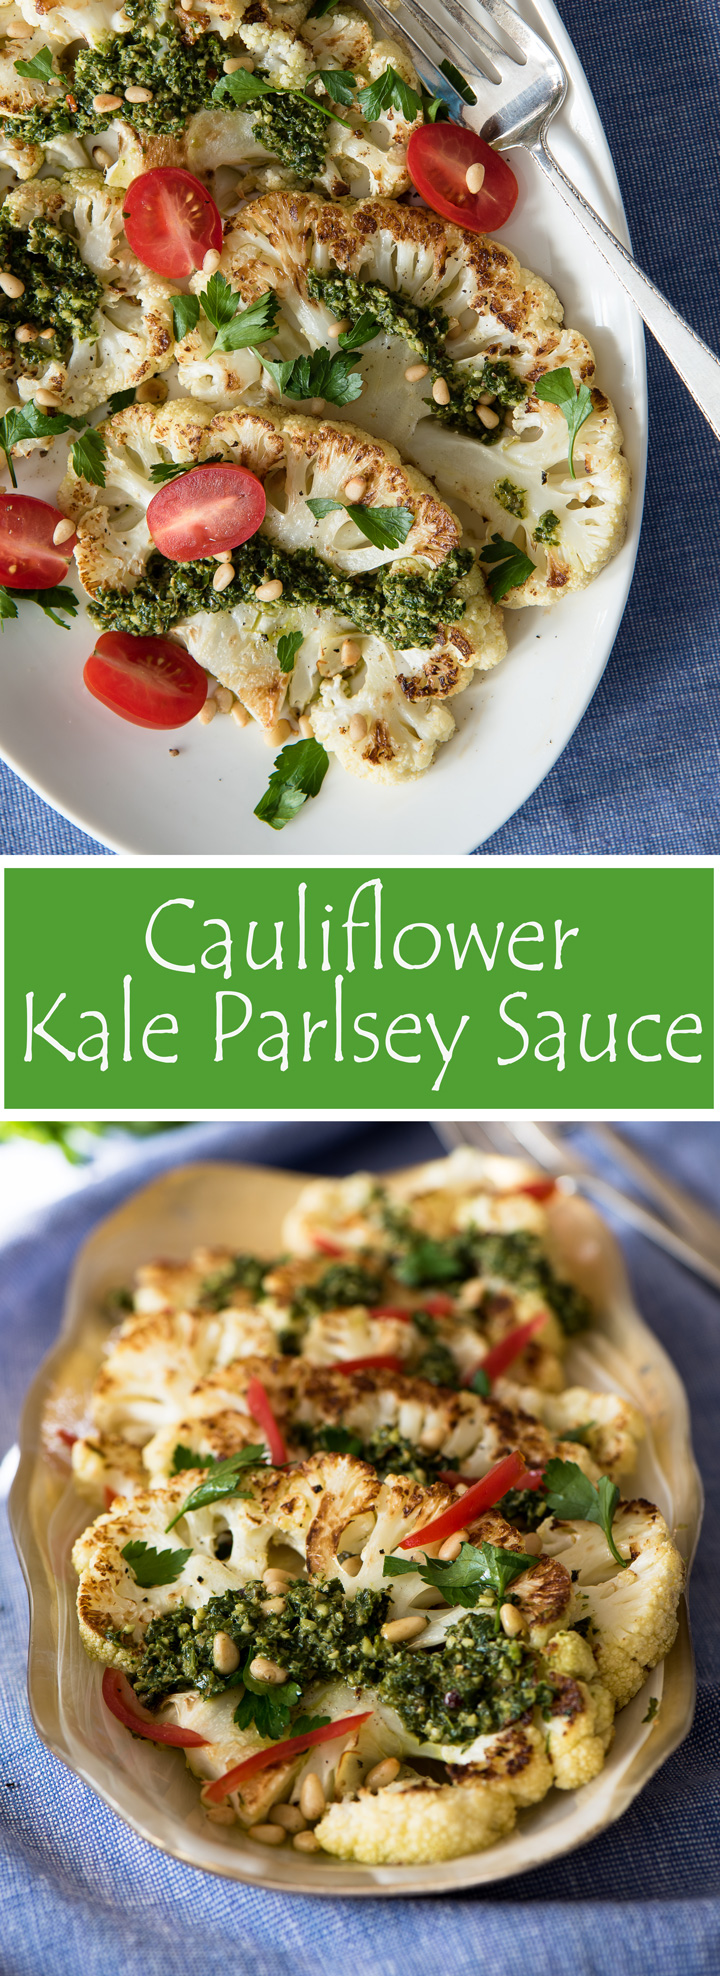 Seared Cauliflower with Vibrant Kale Parsley Sauce. A recipe for seared and roasted cauliflower steaks with a vibrant kale parsley sauce. Made with lucinato kale, Italian parsley, anchovies, capers, garlic and hot pepper flakes. Substitute white miso paste for the anchovies for a vegan version.